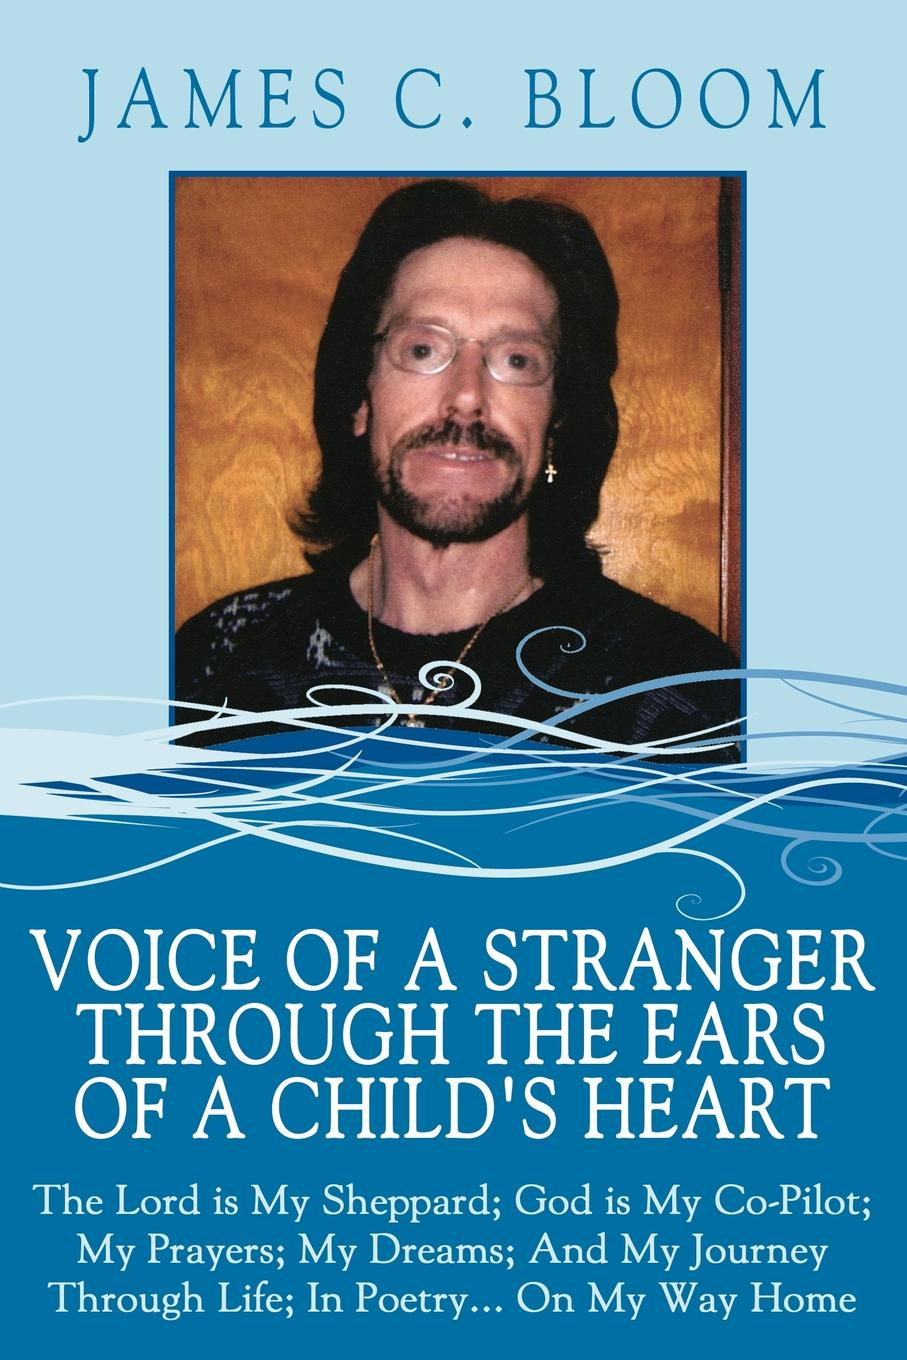 James C. Bloom Voice Of A Stranger Through The Ears Childs Heart. Lord is My Sheppard; God Co-Pilot; Prayers; Dreams; And Journey Life; In Poetry... On Way Home